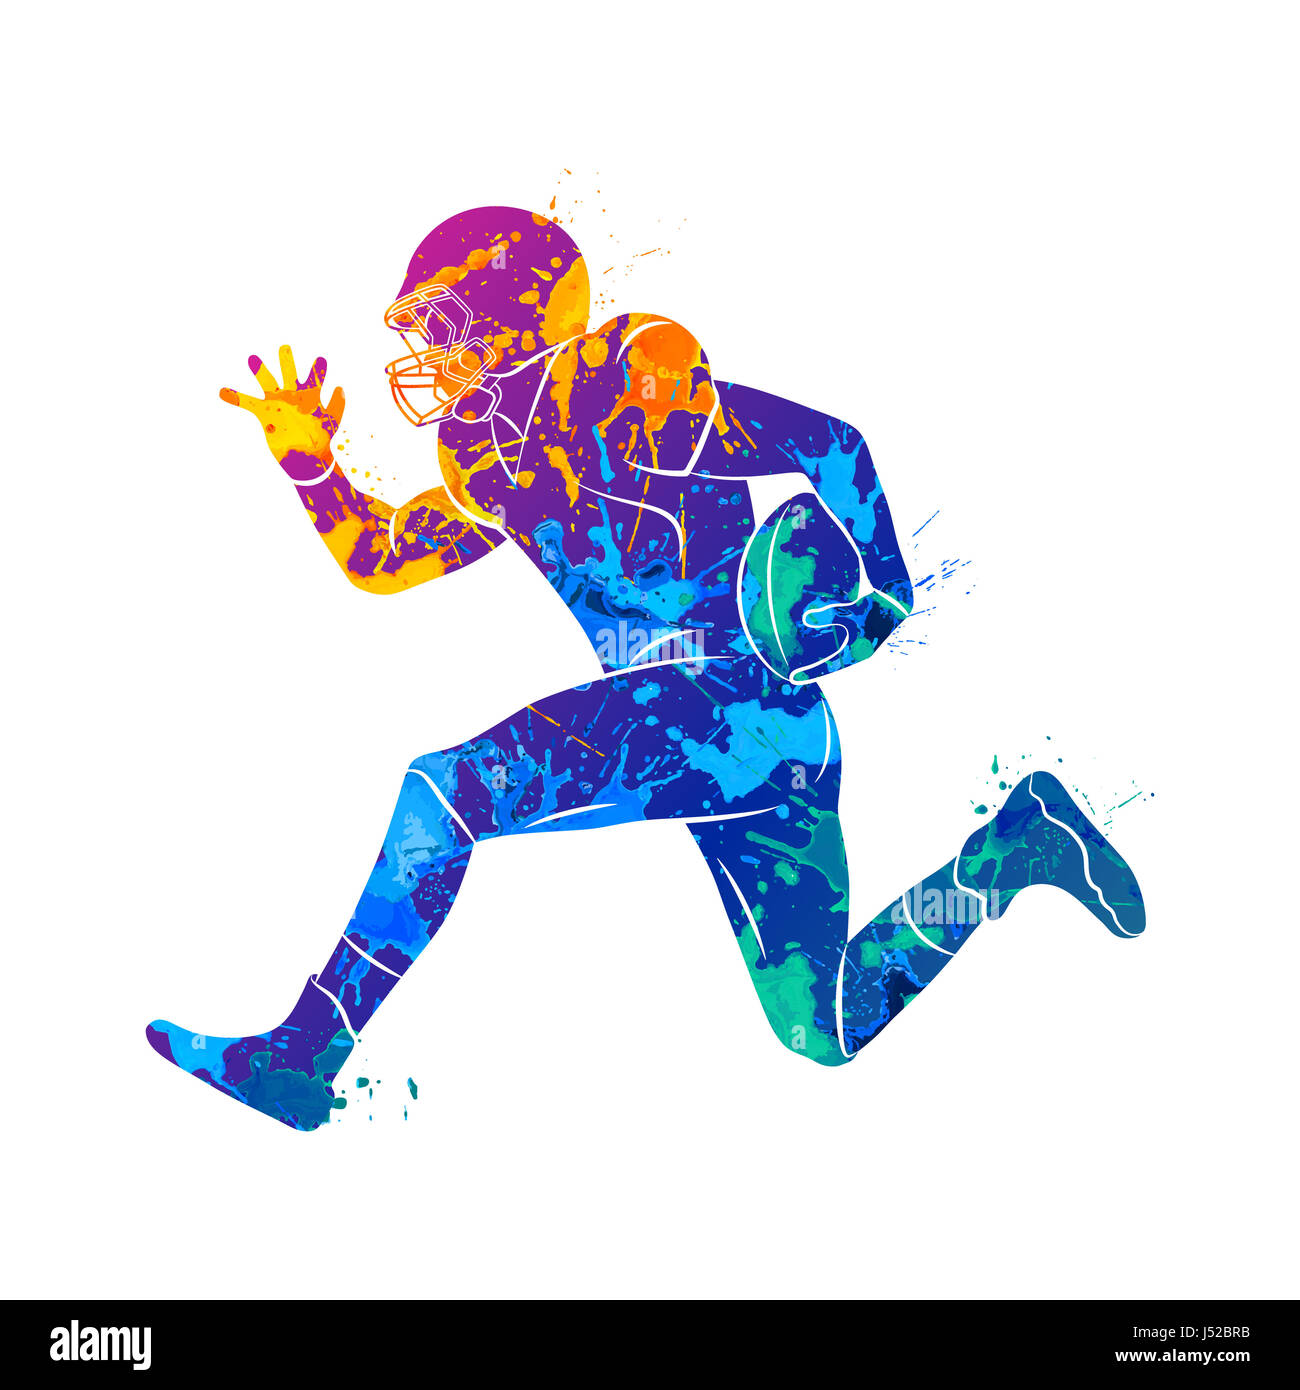 Abstract american football player from splash of watercolors. Photo illustration of paints. - Stock Image